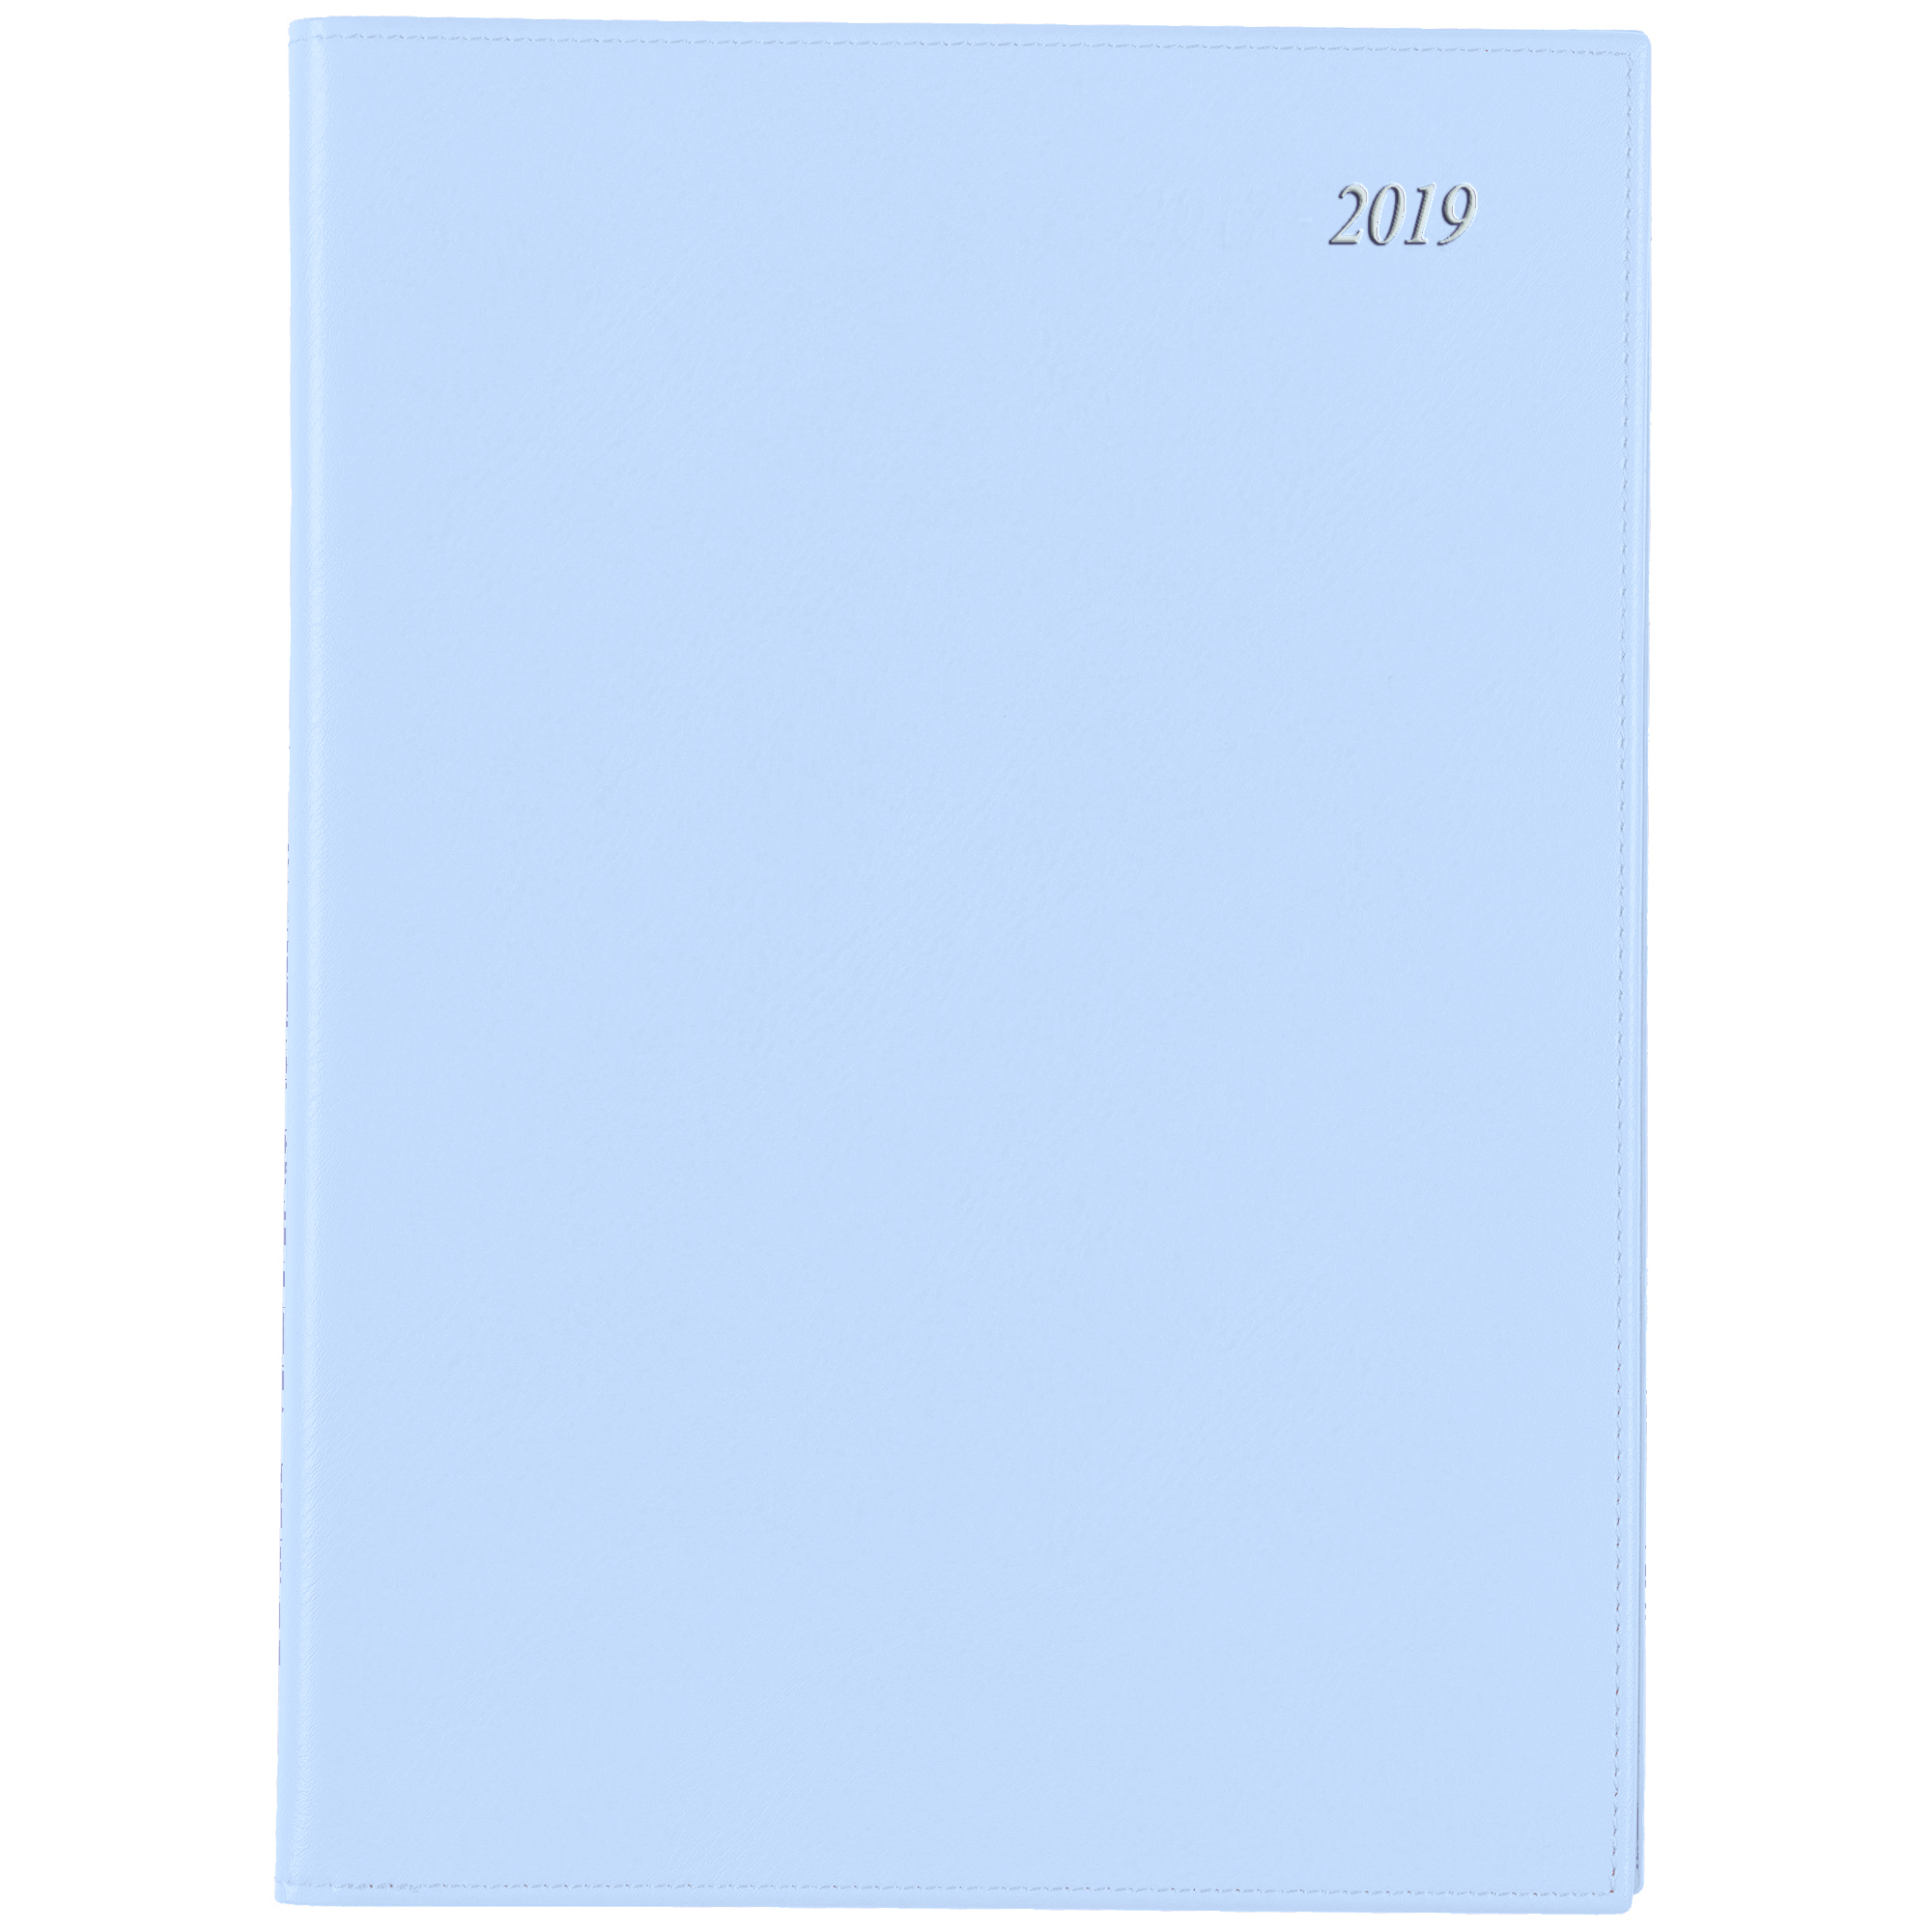 Cumberland A5 Soho Wiro WTO Assorted 2020/21 Financial Year Diary